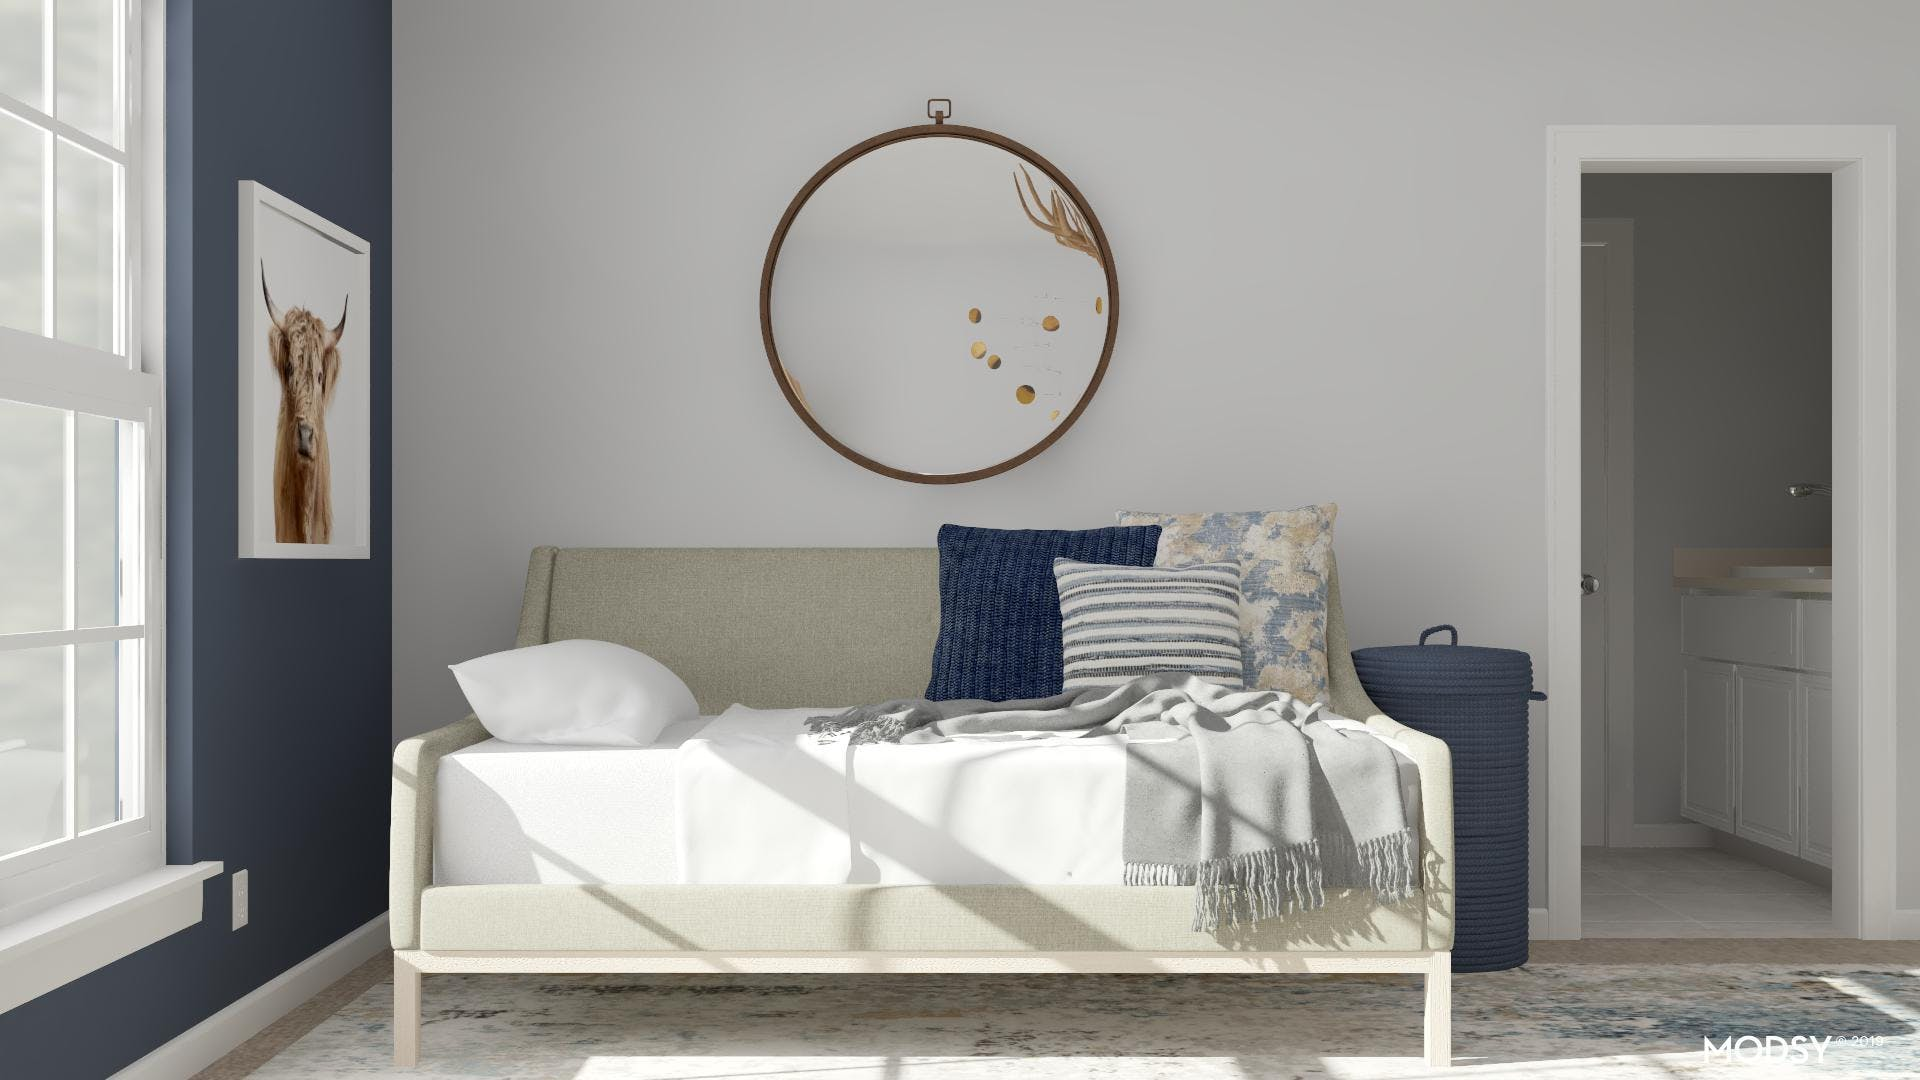 A Daybed for Long Nights